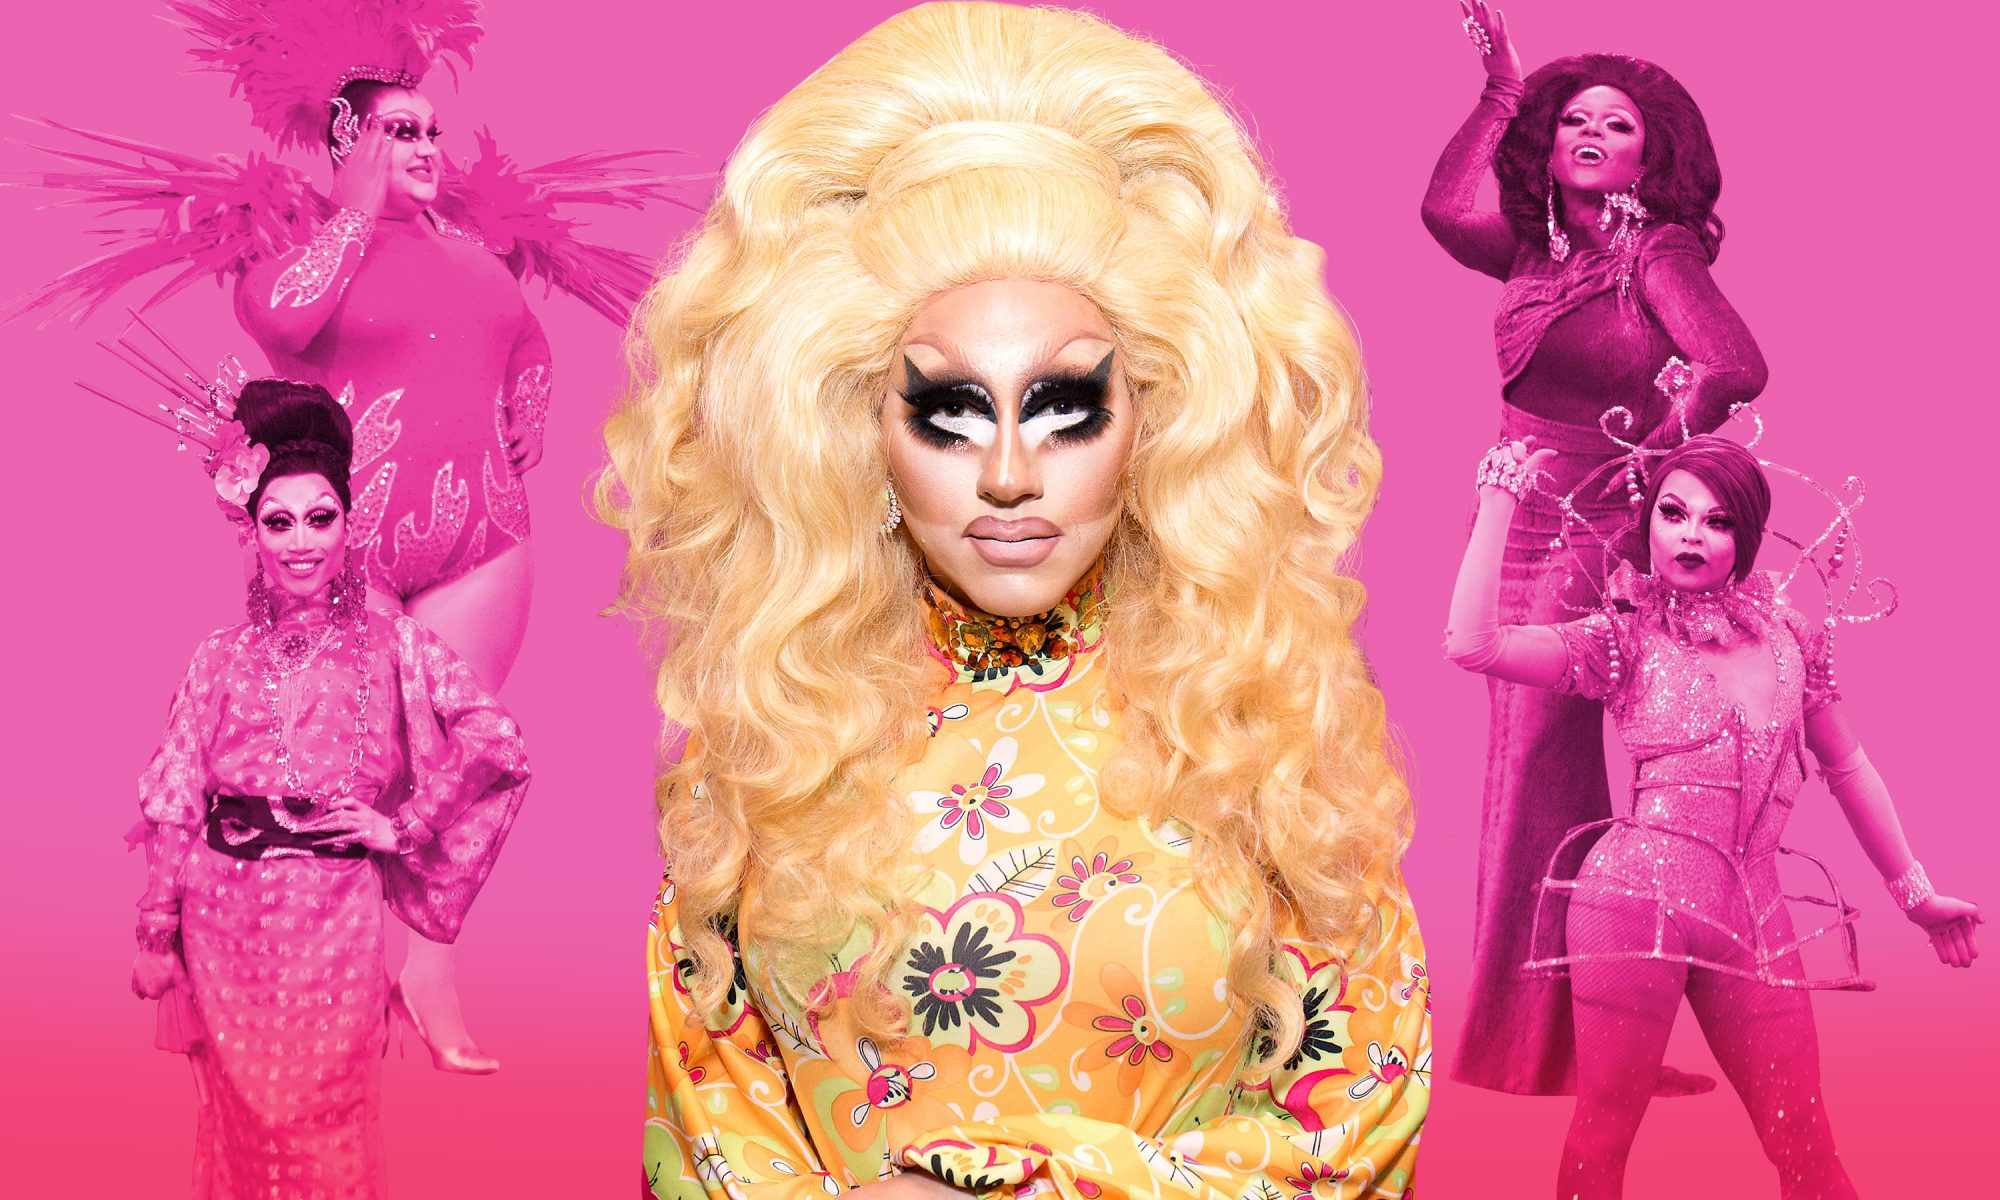 Trixie Mattel reads the RuPaul's Drag Race season 10 entrance looks